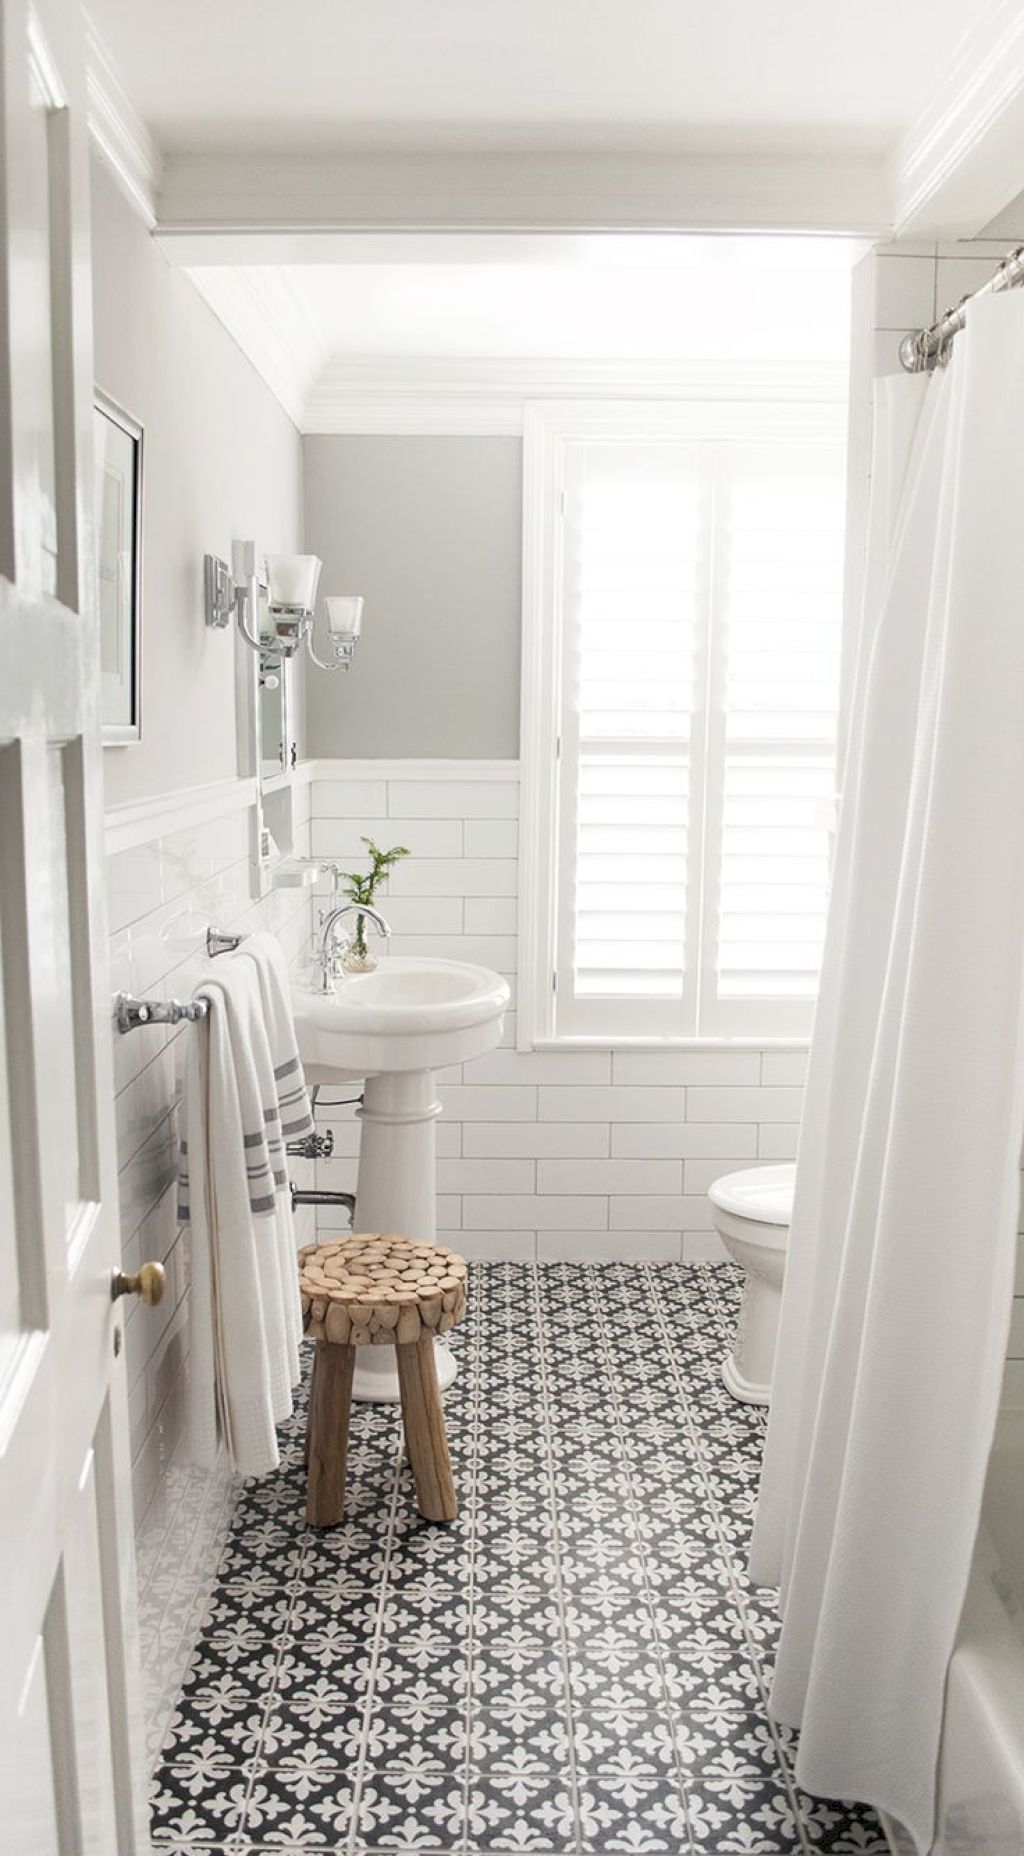 14 Best Small Bathroom Remodel Ideas On A Budget  Small Bathroom Interesting Bathroom Renovation Ideas For Tight Budget Inspiration